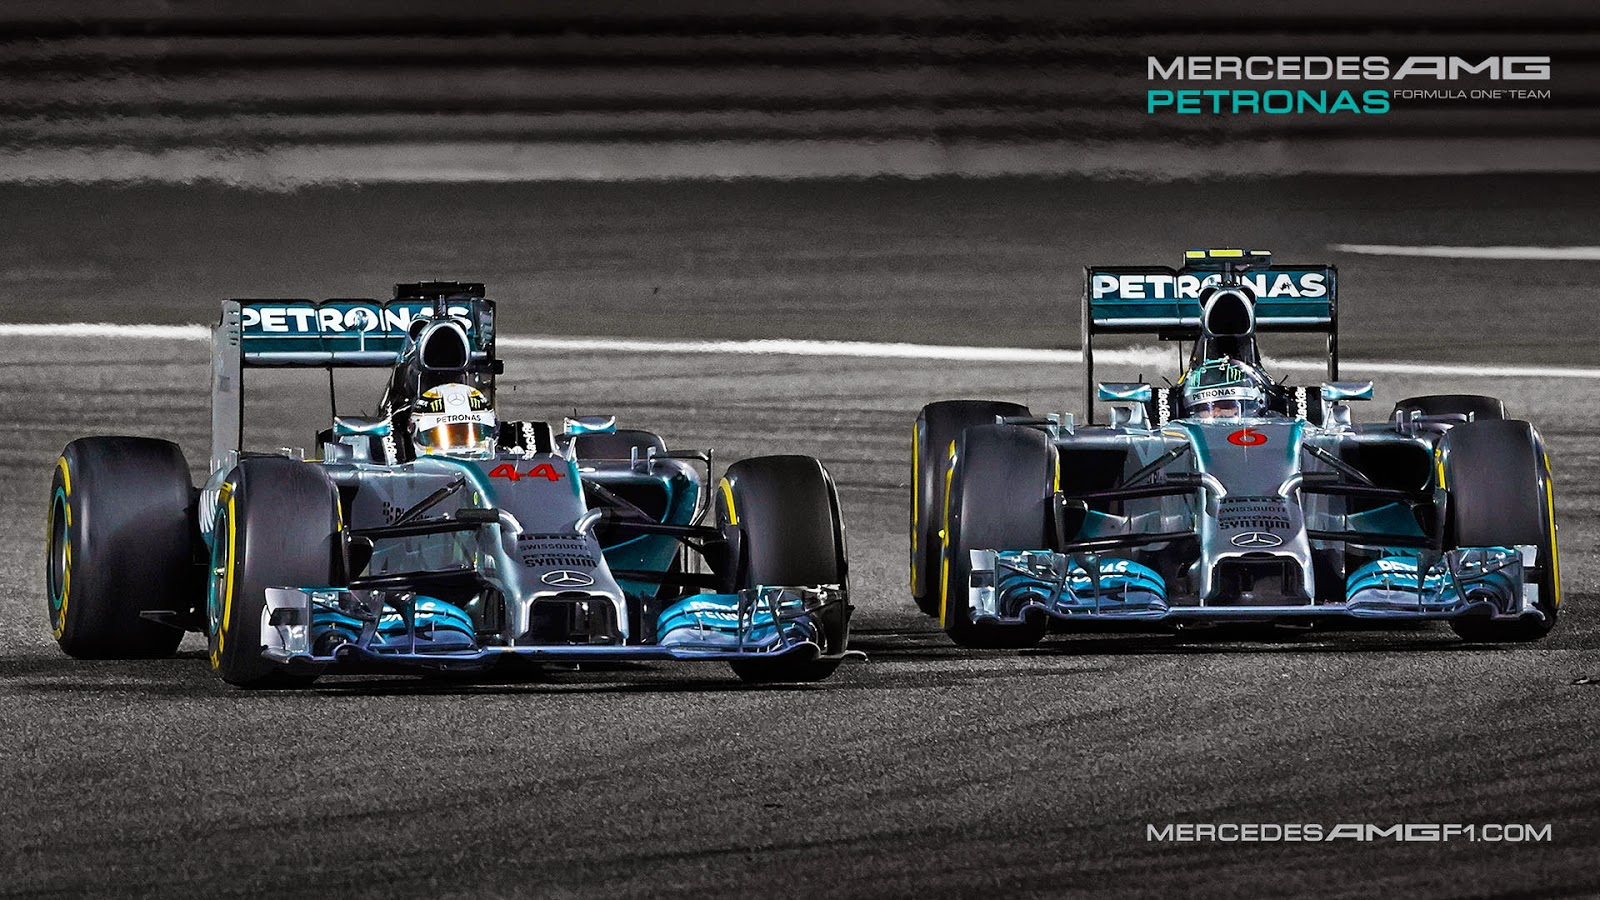 Mercedes amg petronas f1 team wallpaper 9